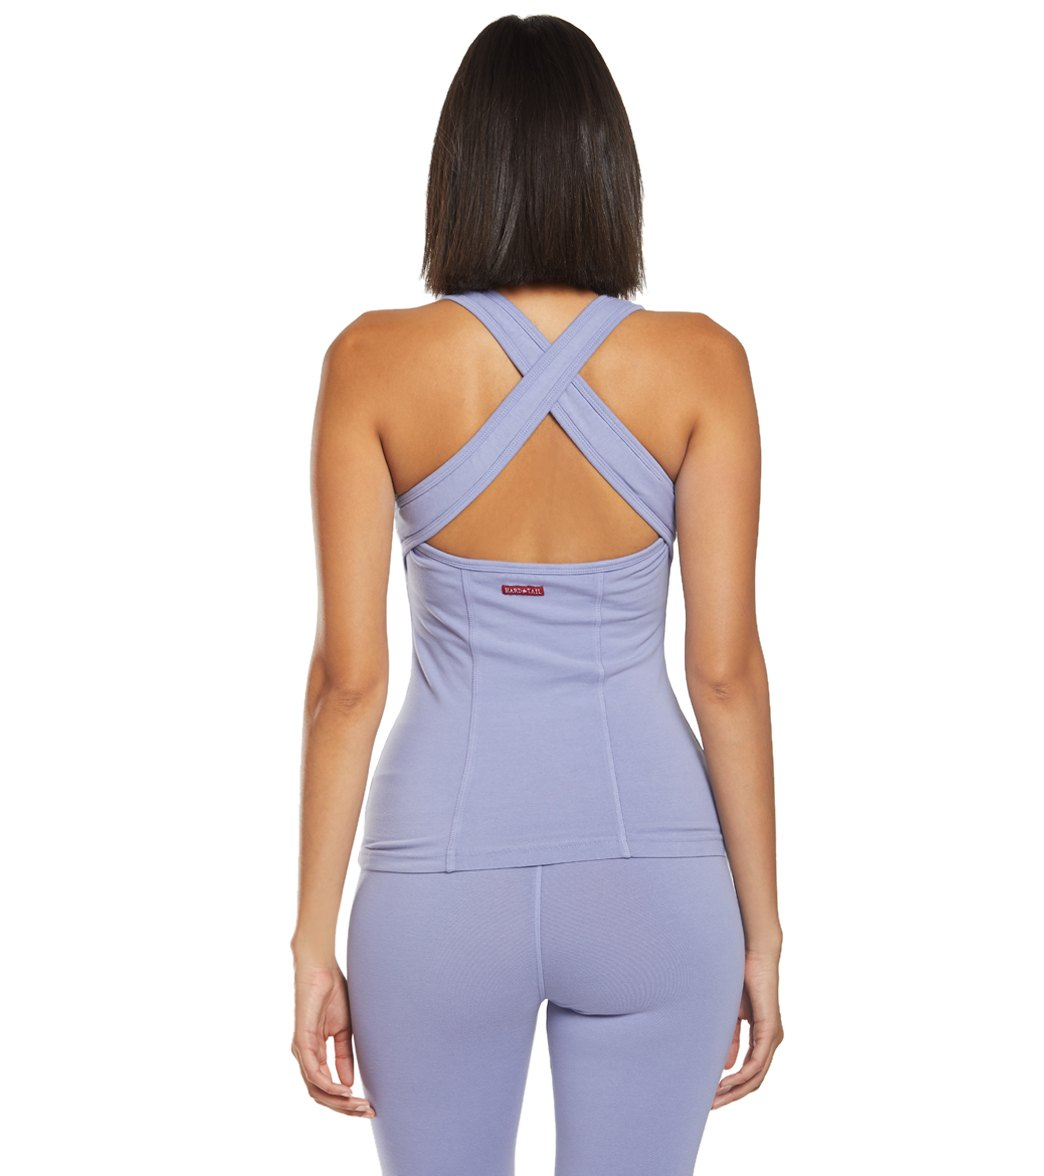 The Hard Tail Open Back Support Tank Tops is a necessity for your yoga wardrobe. The high neck gives you full coverage while the tank style and cross strap back keeps you cool and unrestricted of movement. Features High scoop neck. Solid colors. Built in shelf bra for added support. Sleeveless. Open cross back design, Fitted design that keeps tight to the body. Details Fabric: 90% Cotton, 10% Lycra Color: Black, Dove, Fig, Mauve, River, White Style Features: Solid, Open back cross strap design F